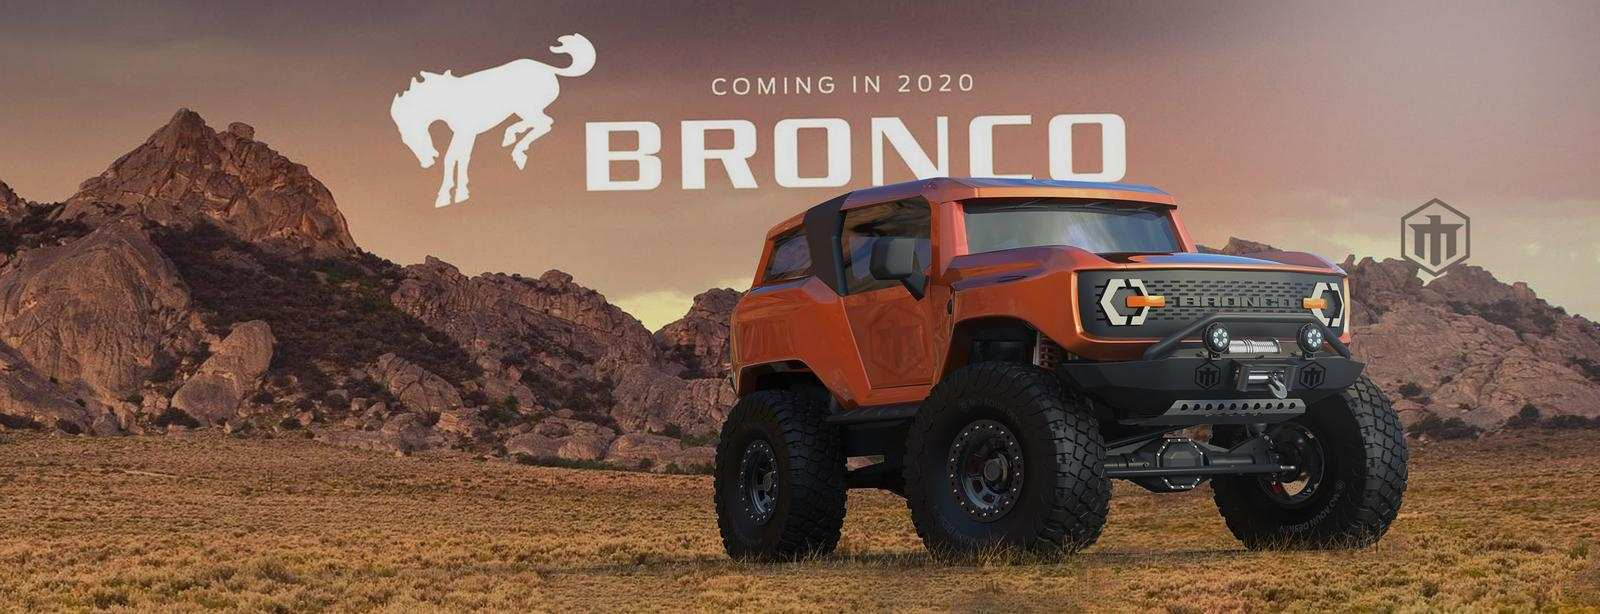 46 A 2020 Ford Bronco Wallpaper Price